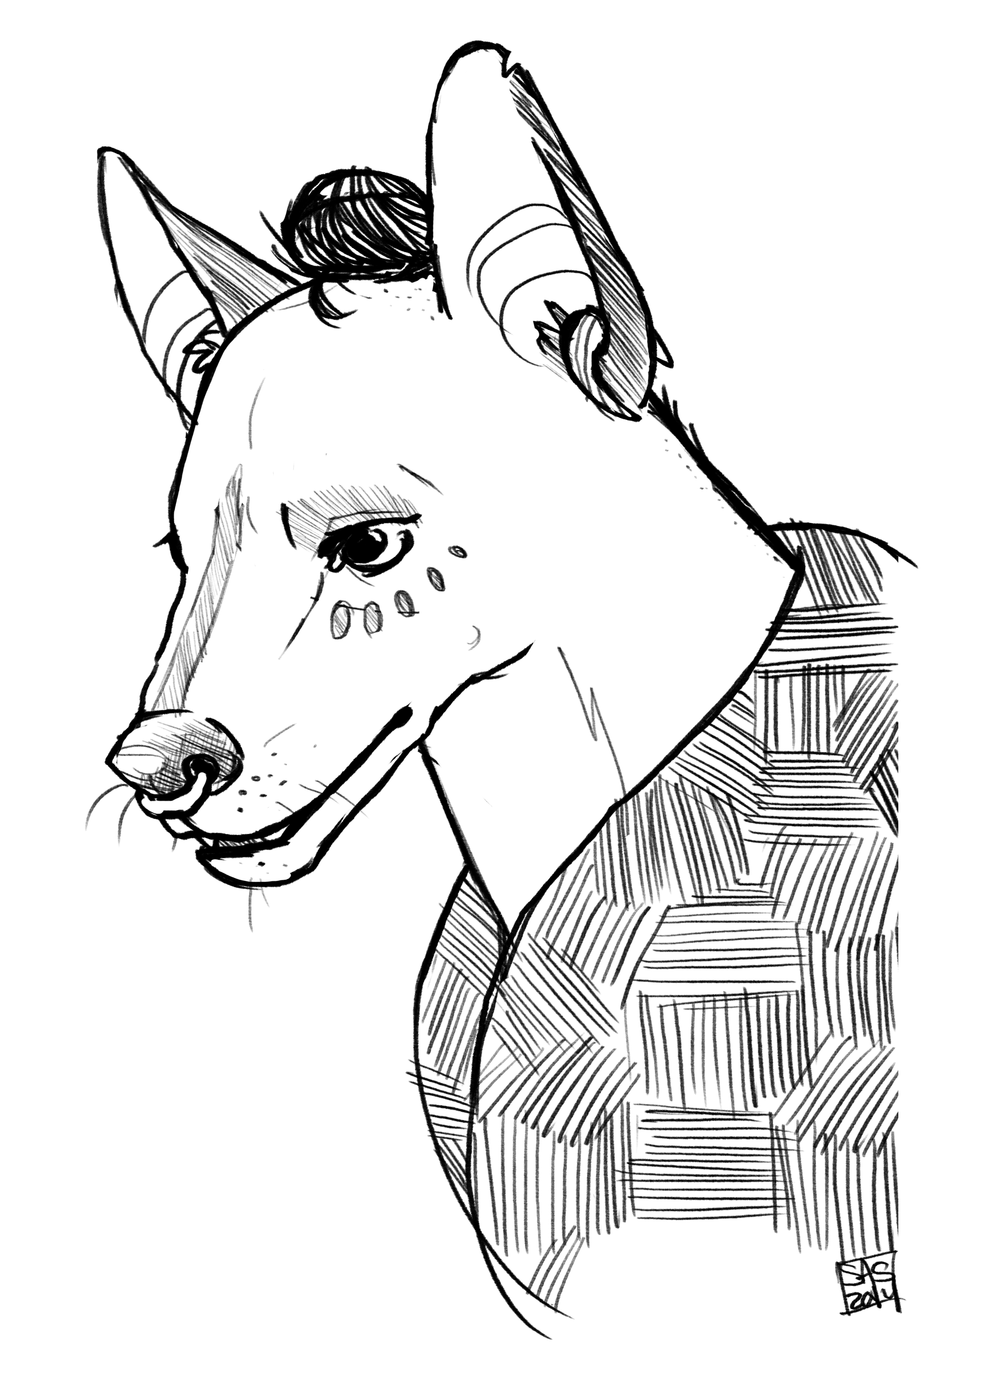 manedwolfdoodle.png